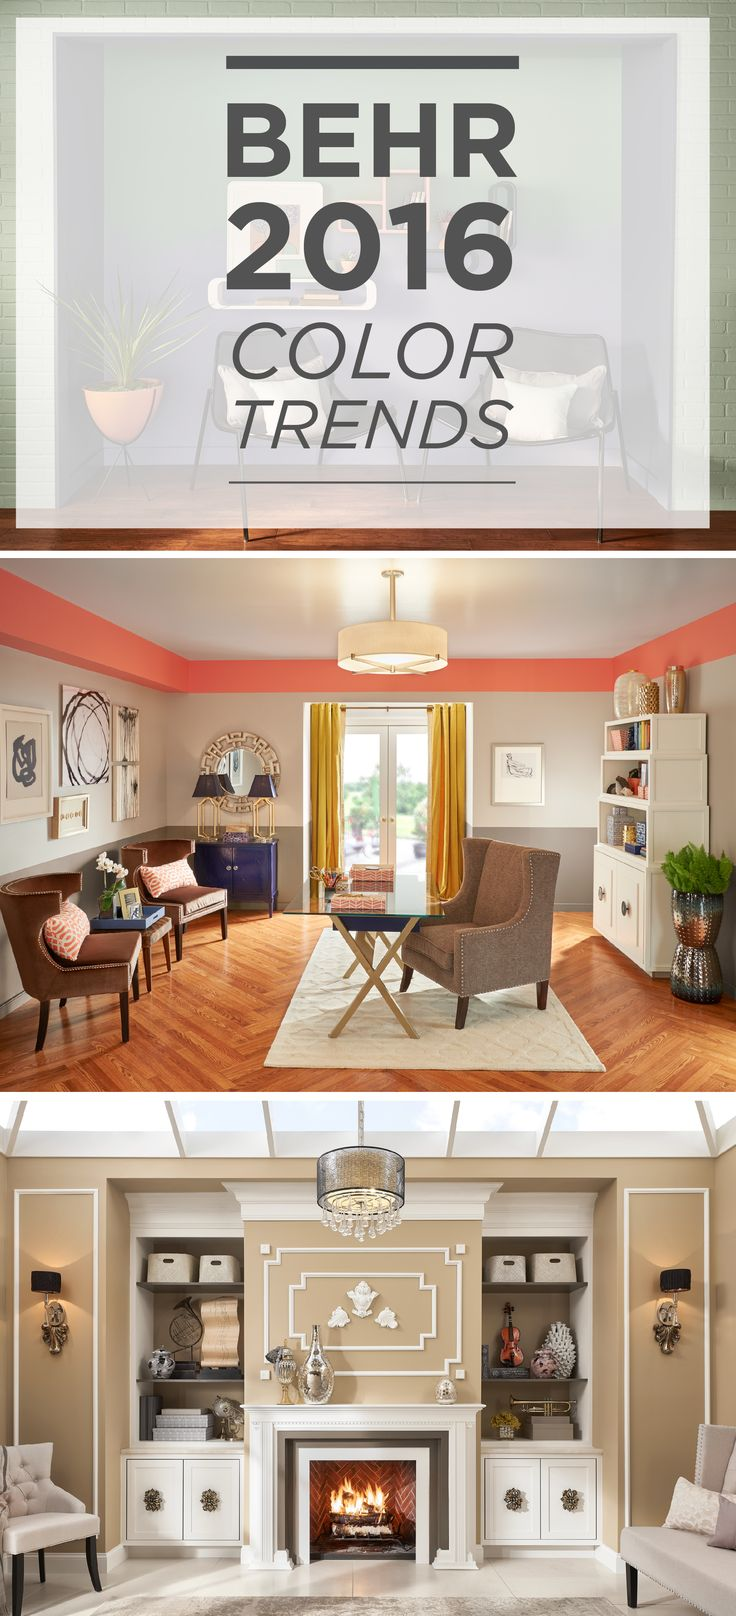 Featuring BEHR paint in Penthouse View, Coralette, Symphony Gold, and Ivory Keys, these sophisticated spaces are sure to inspire you on ways to add visual interest and draw the eye to the tall ceilings of your room!